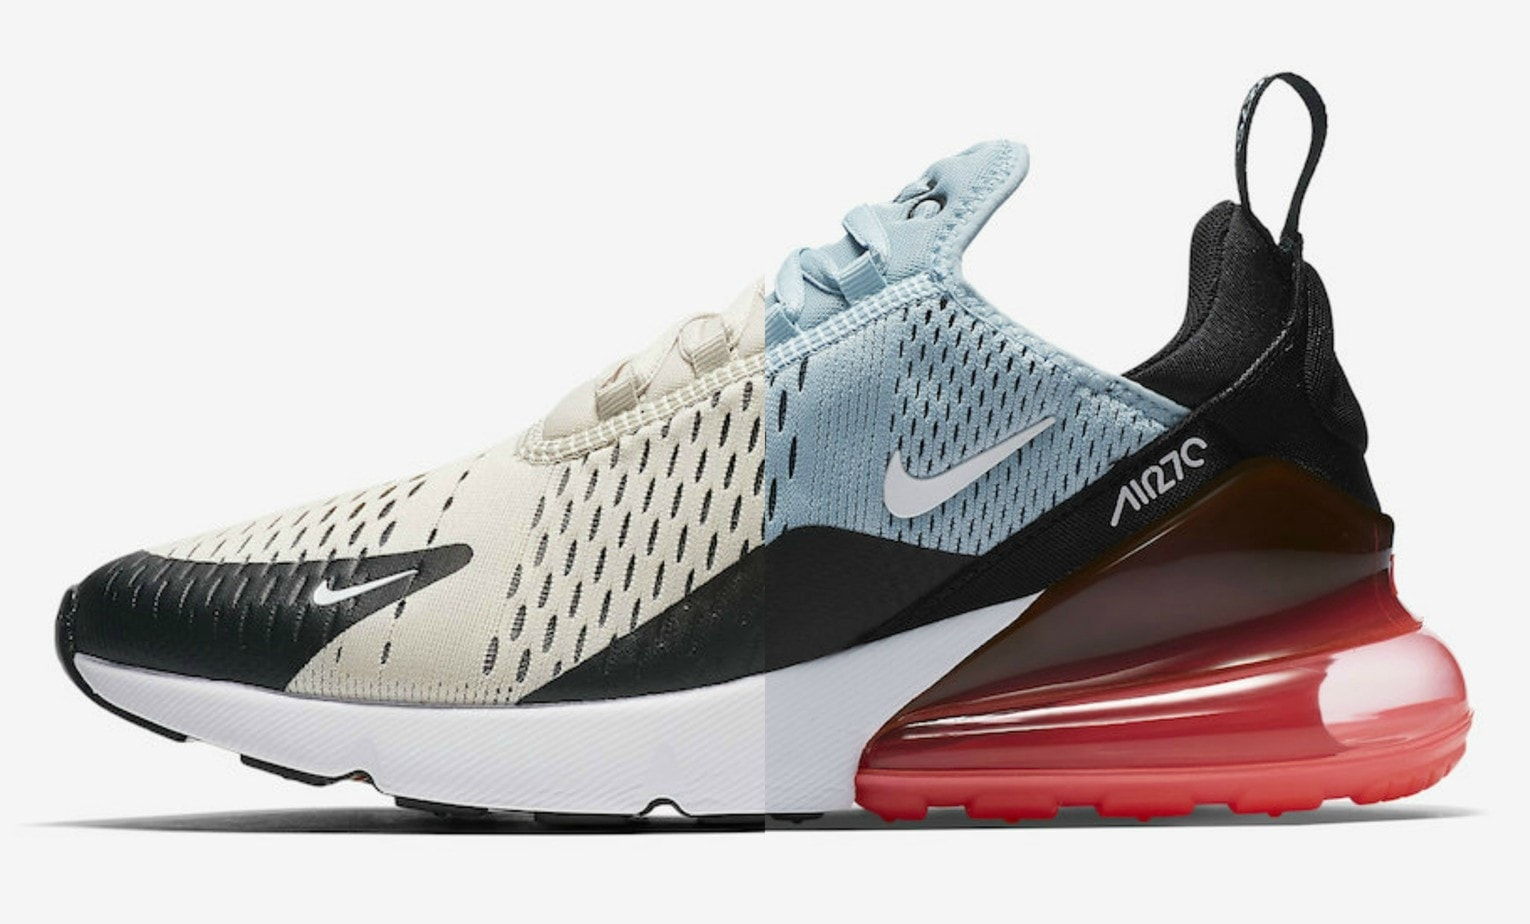 498a22b46849 Two More Nike Air Max 270 Colorways Are Coming in March - JustFreshKicks